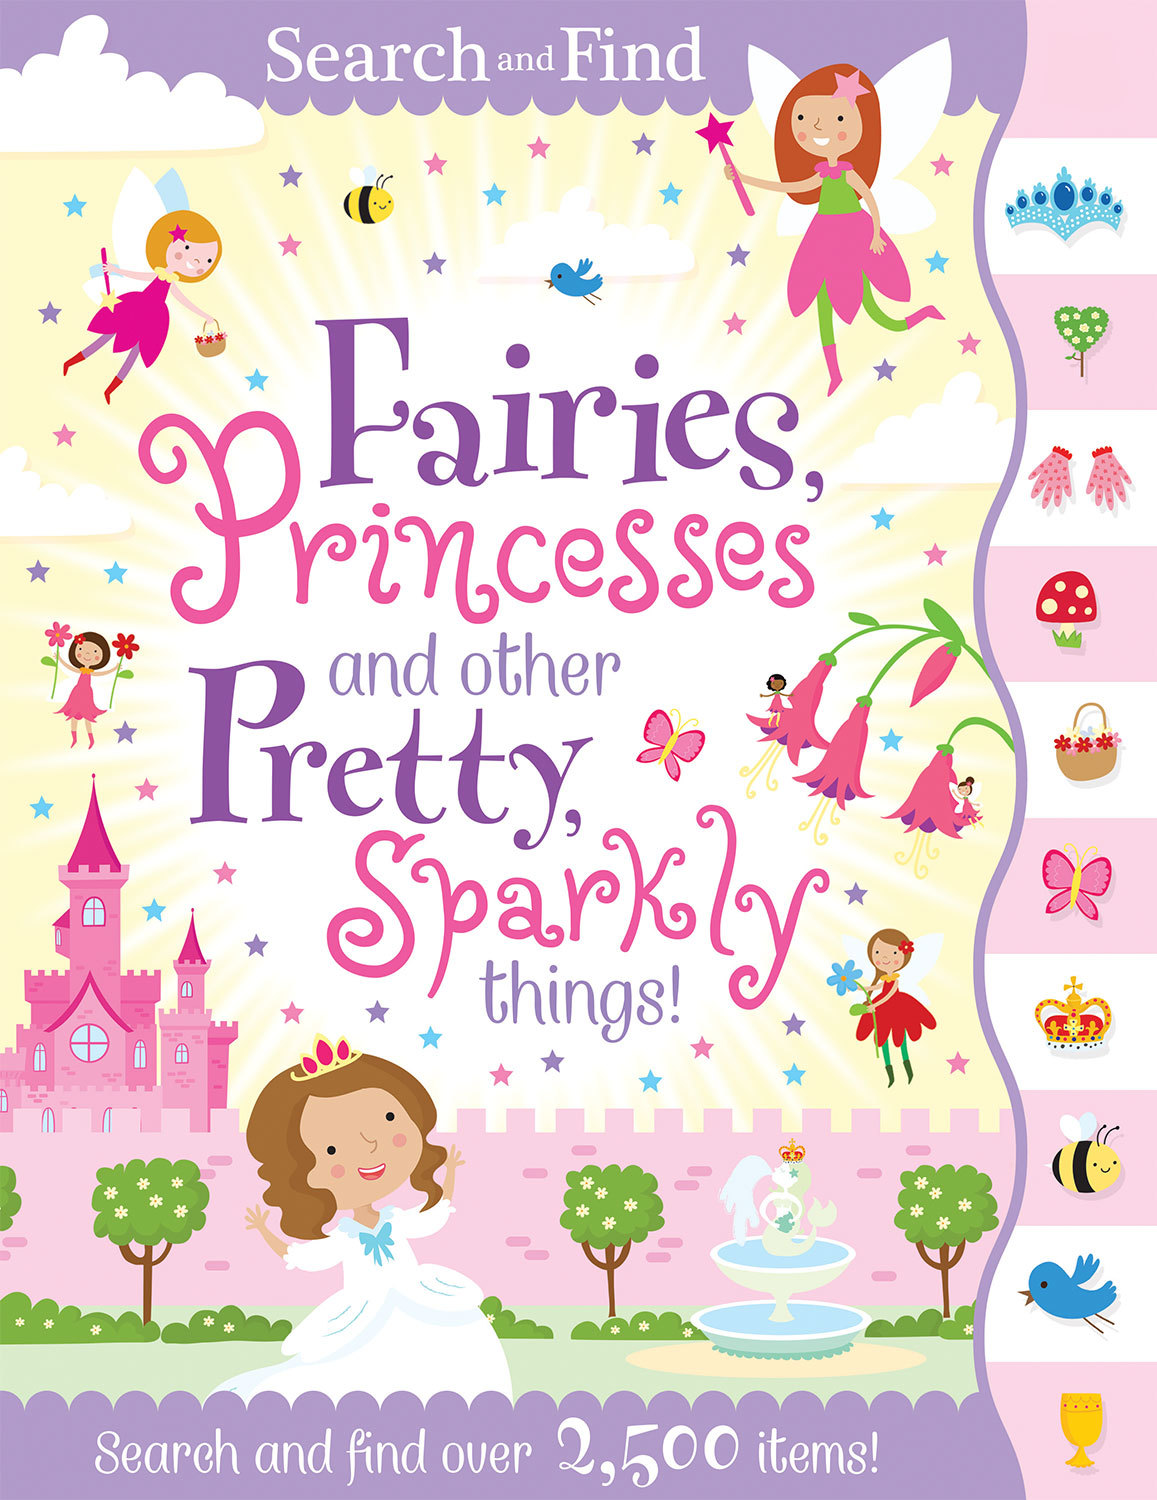 SEARCH AND FIND PRINCESS AND FAIRIES